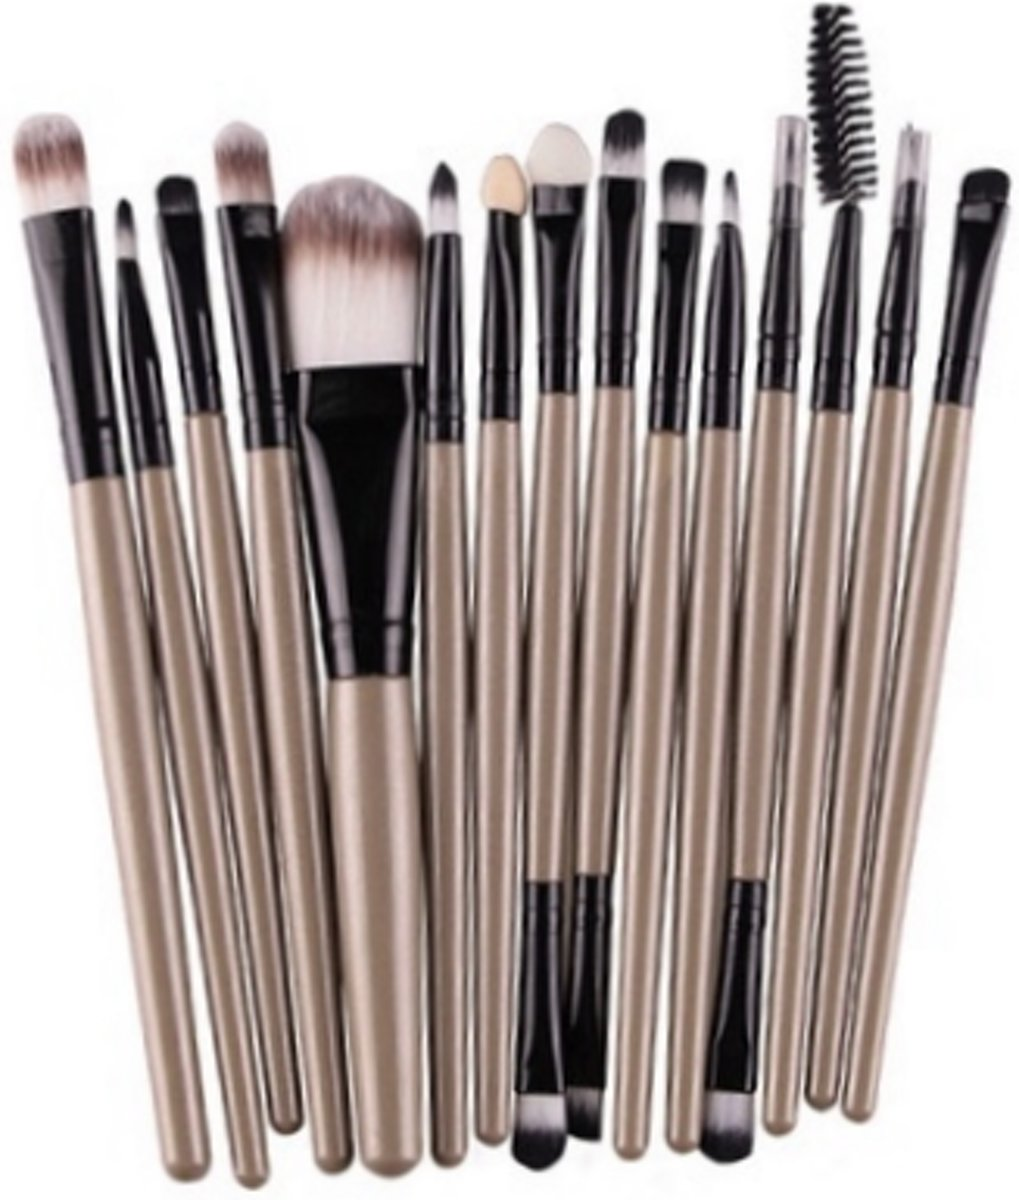 15-delige Make-up Kwasten/Brush Set | Brons | Fashion Favorite